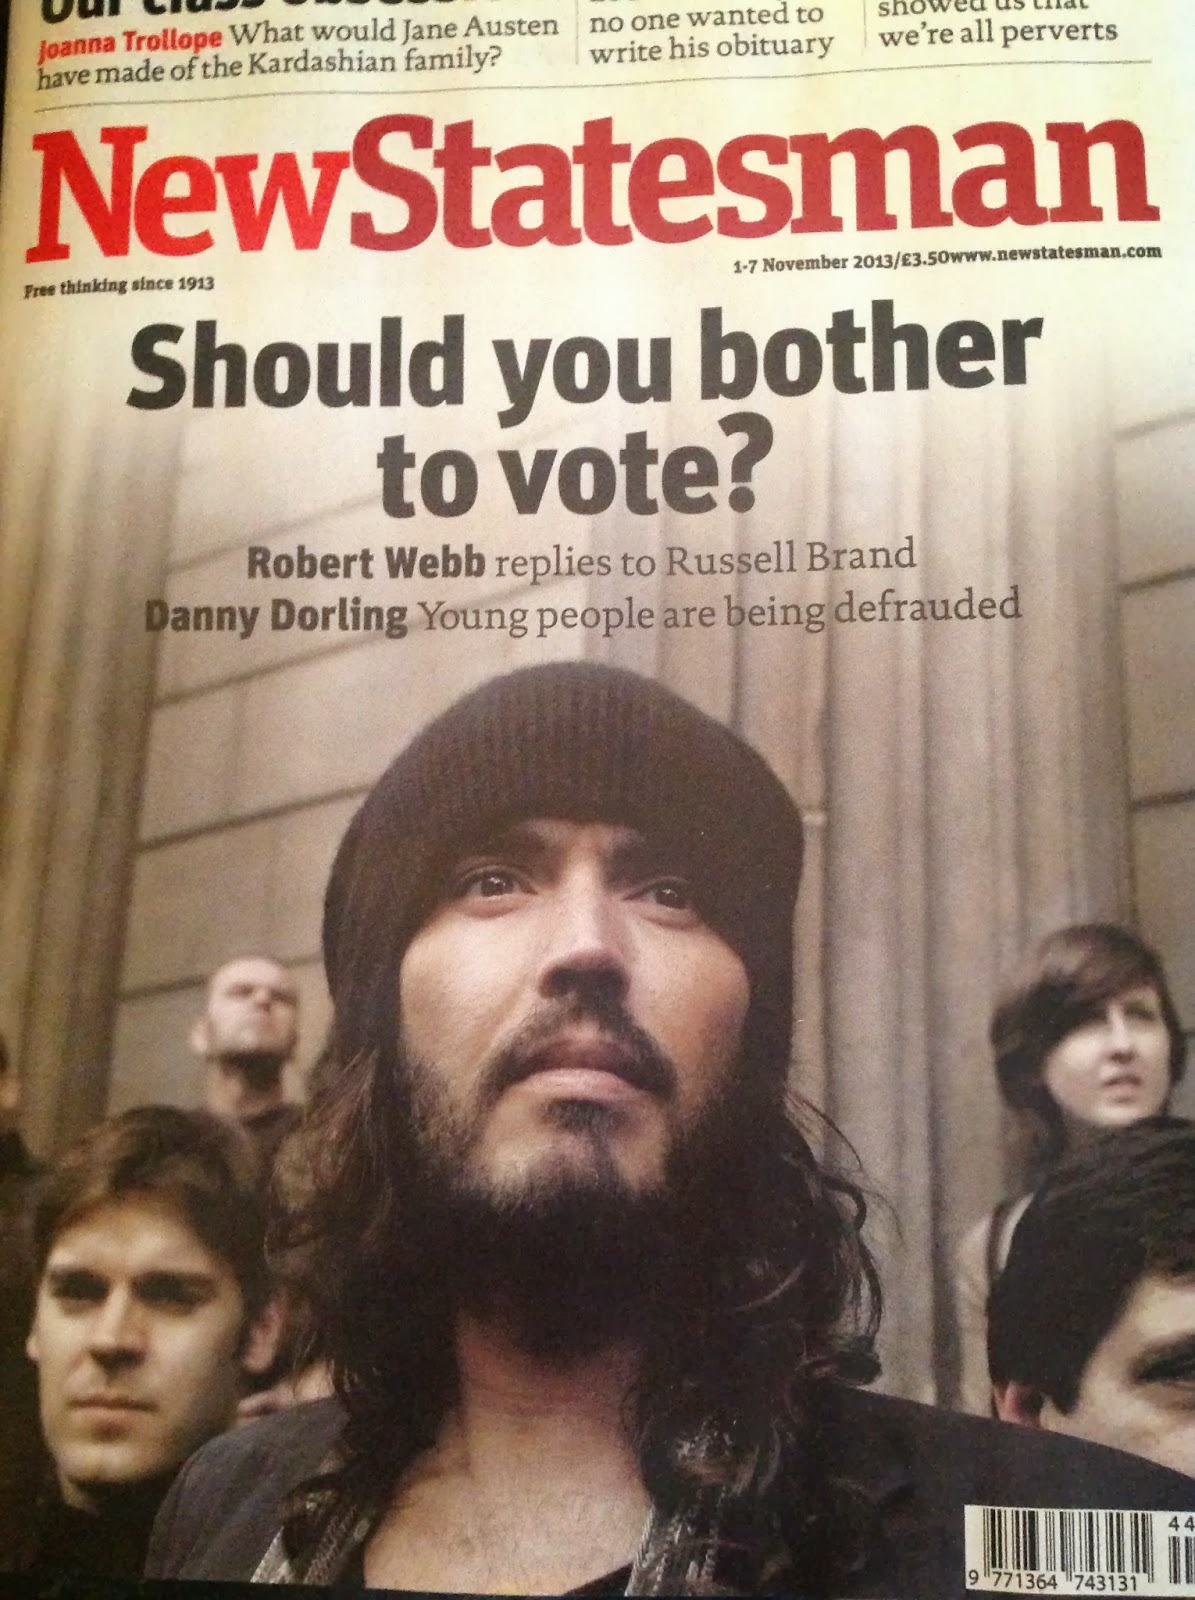 Russel Brand on New Statesman cover